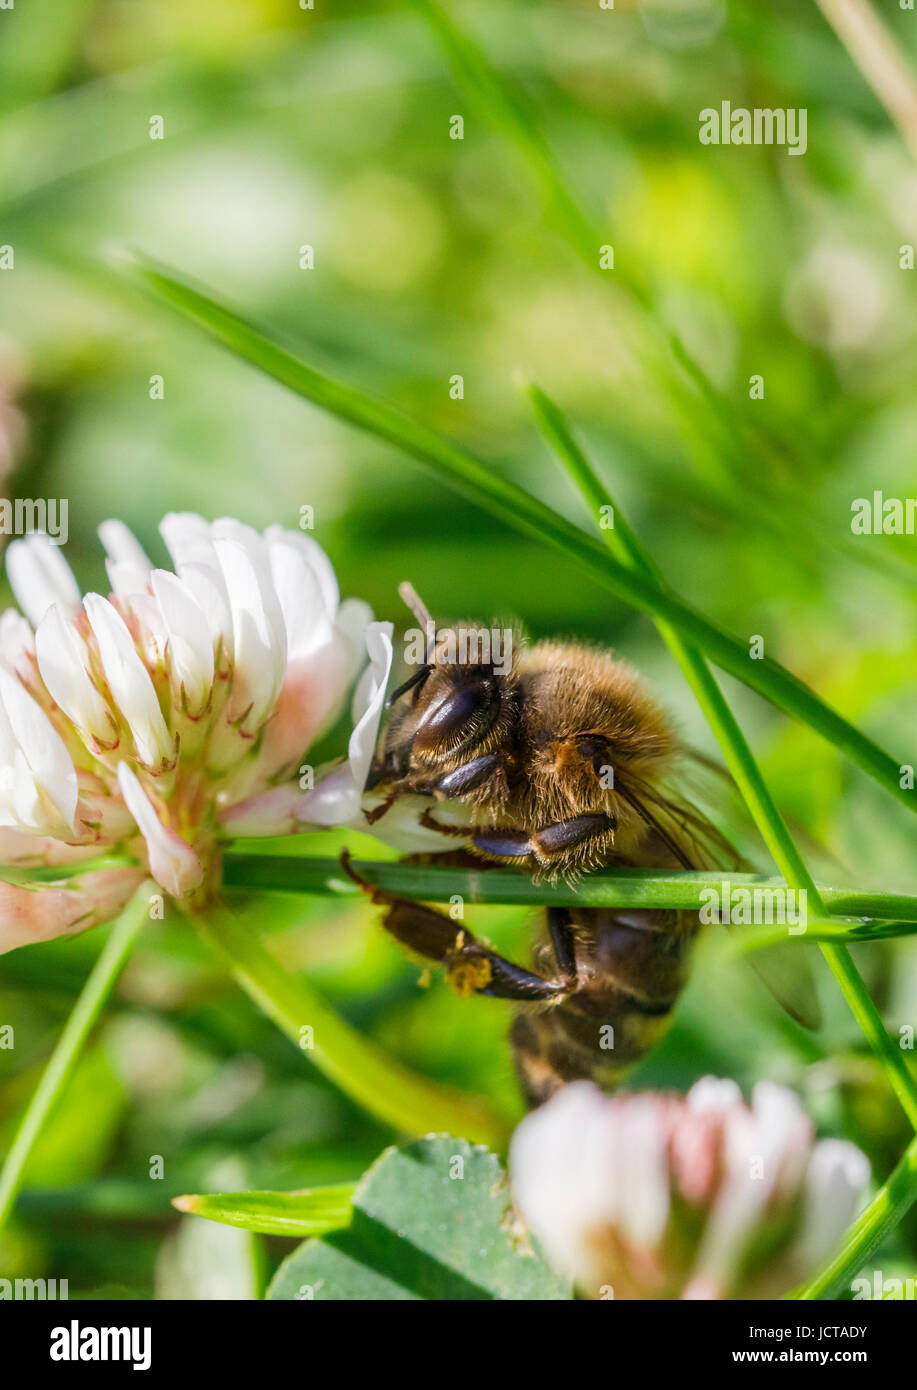 Western honey bee or European honey bee (Apis mellifera) collects nectar, pollen from and pollinates clover in early - Stock Image